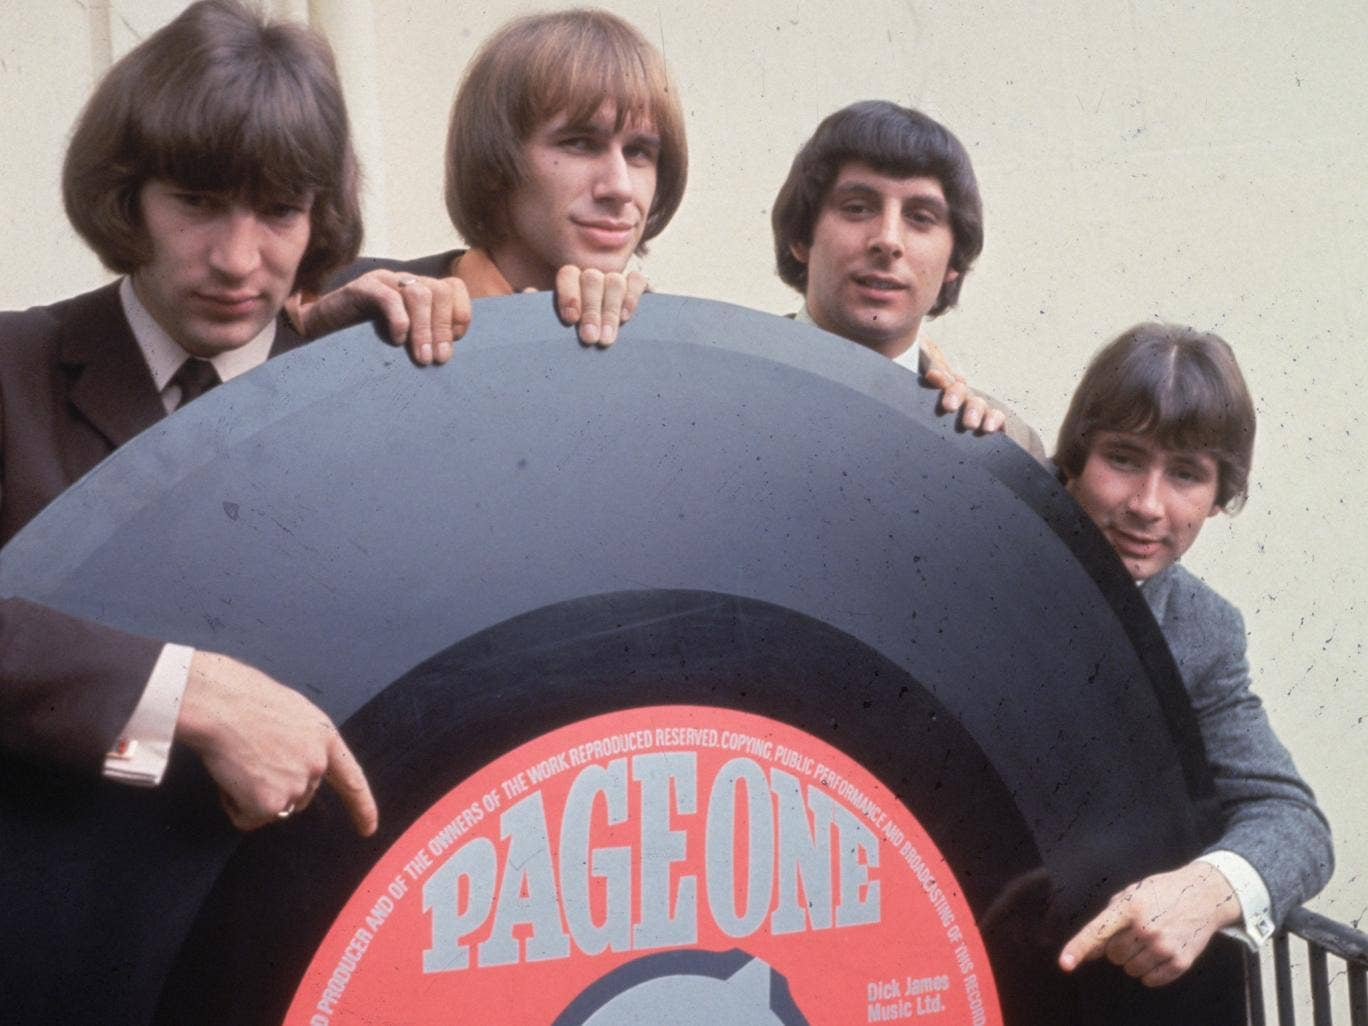 The Troggs in 1965: Ronnie Bond, Chris Britton, Pete Staples and Presley